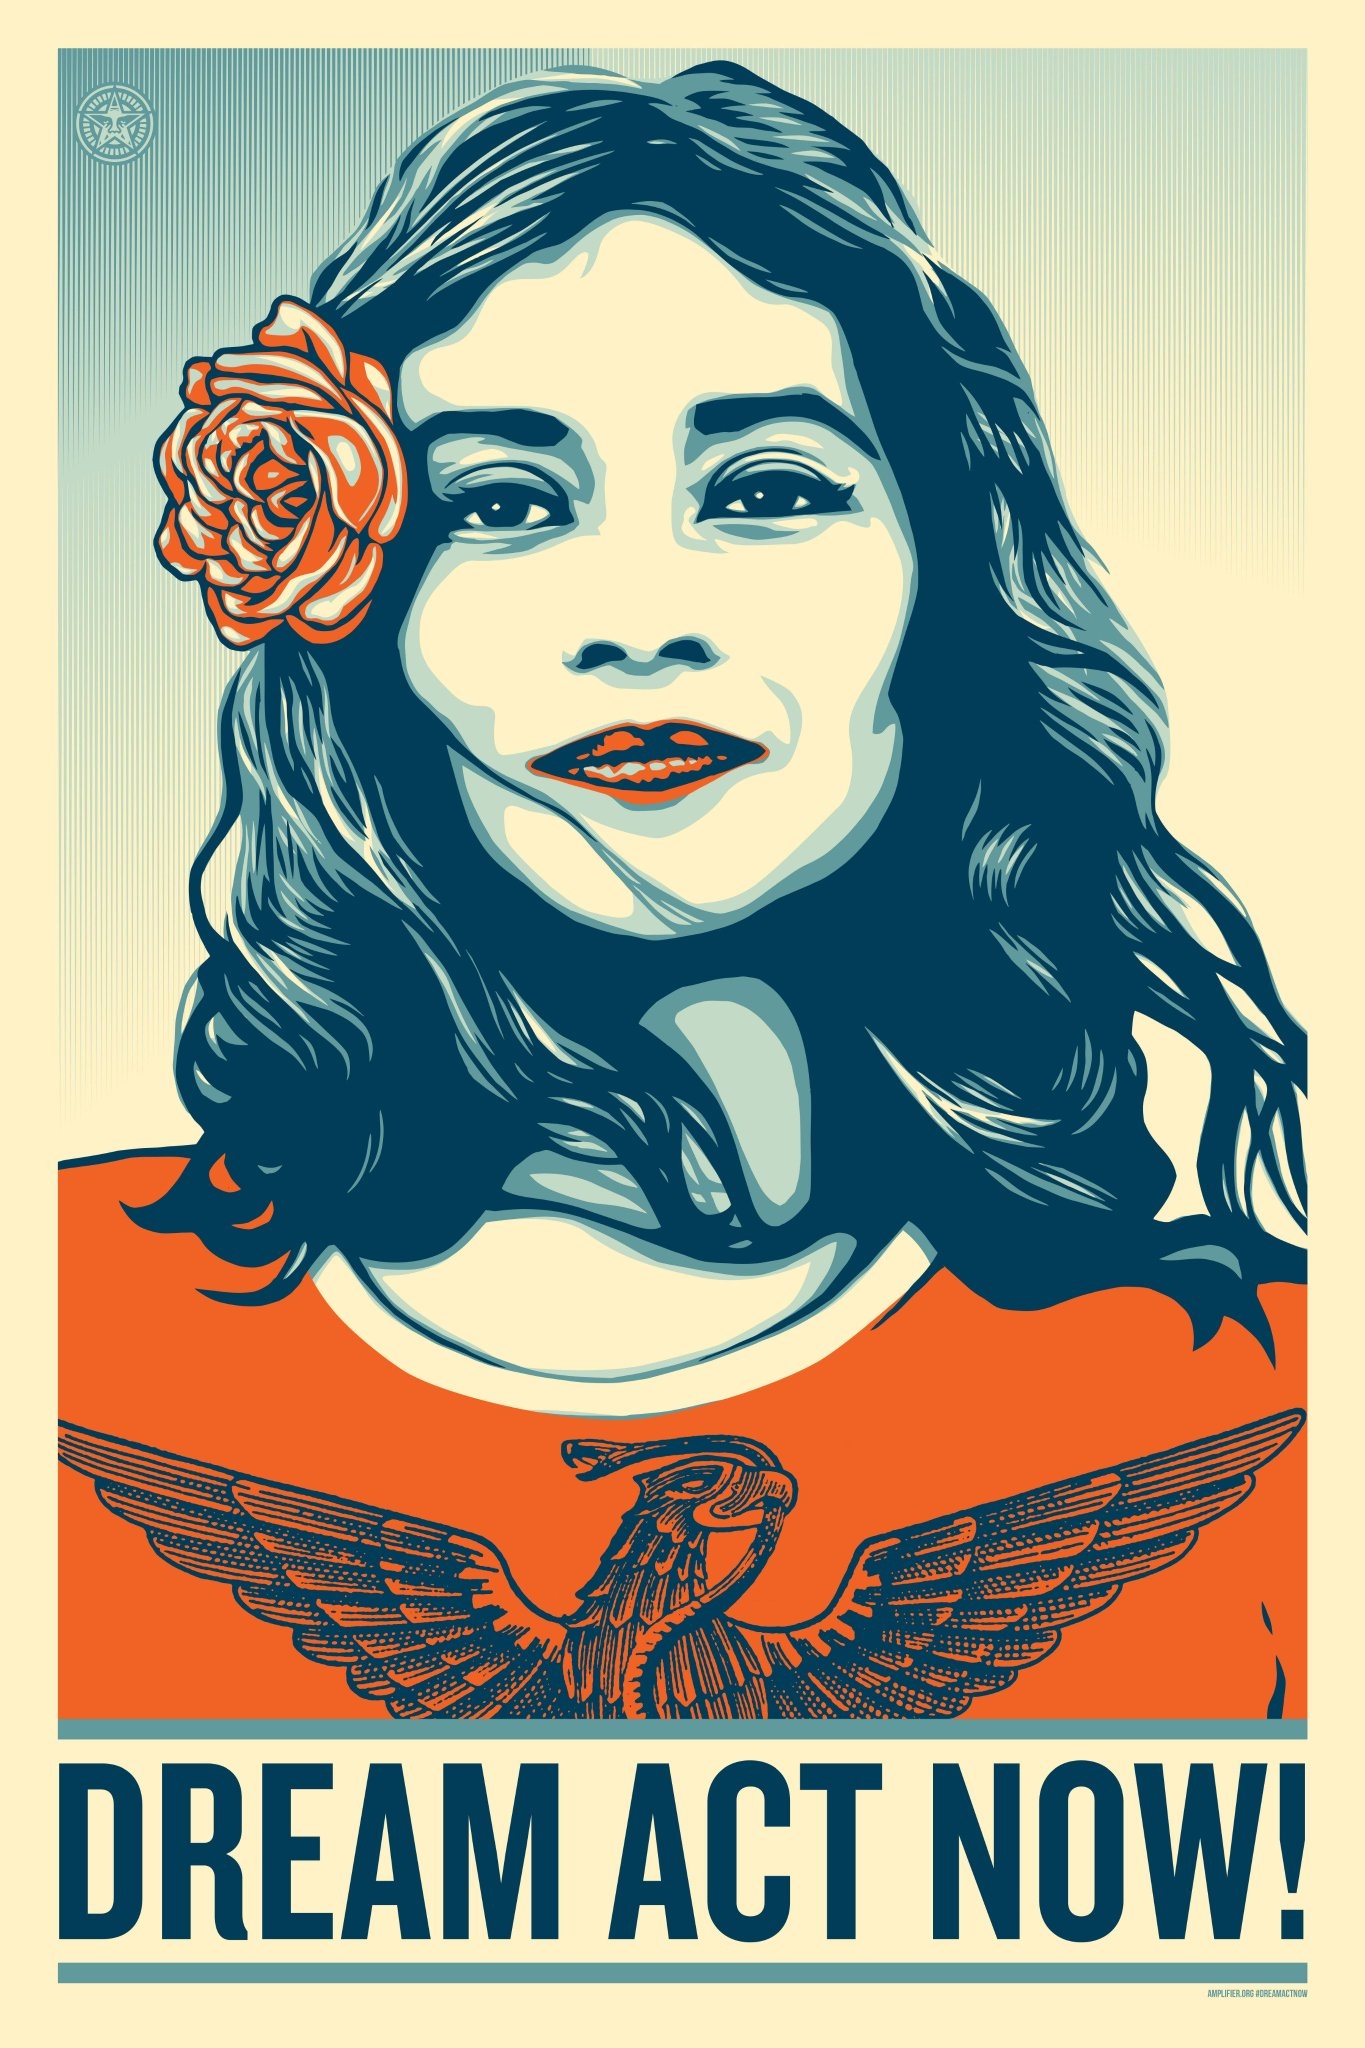 Beautiful. #DreamActNow #WomensMarch2018 https://t.co/q8CkvOAxQ9 https://t.co/jWtf1ItsWK